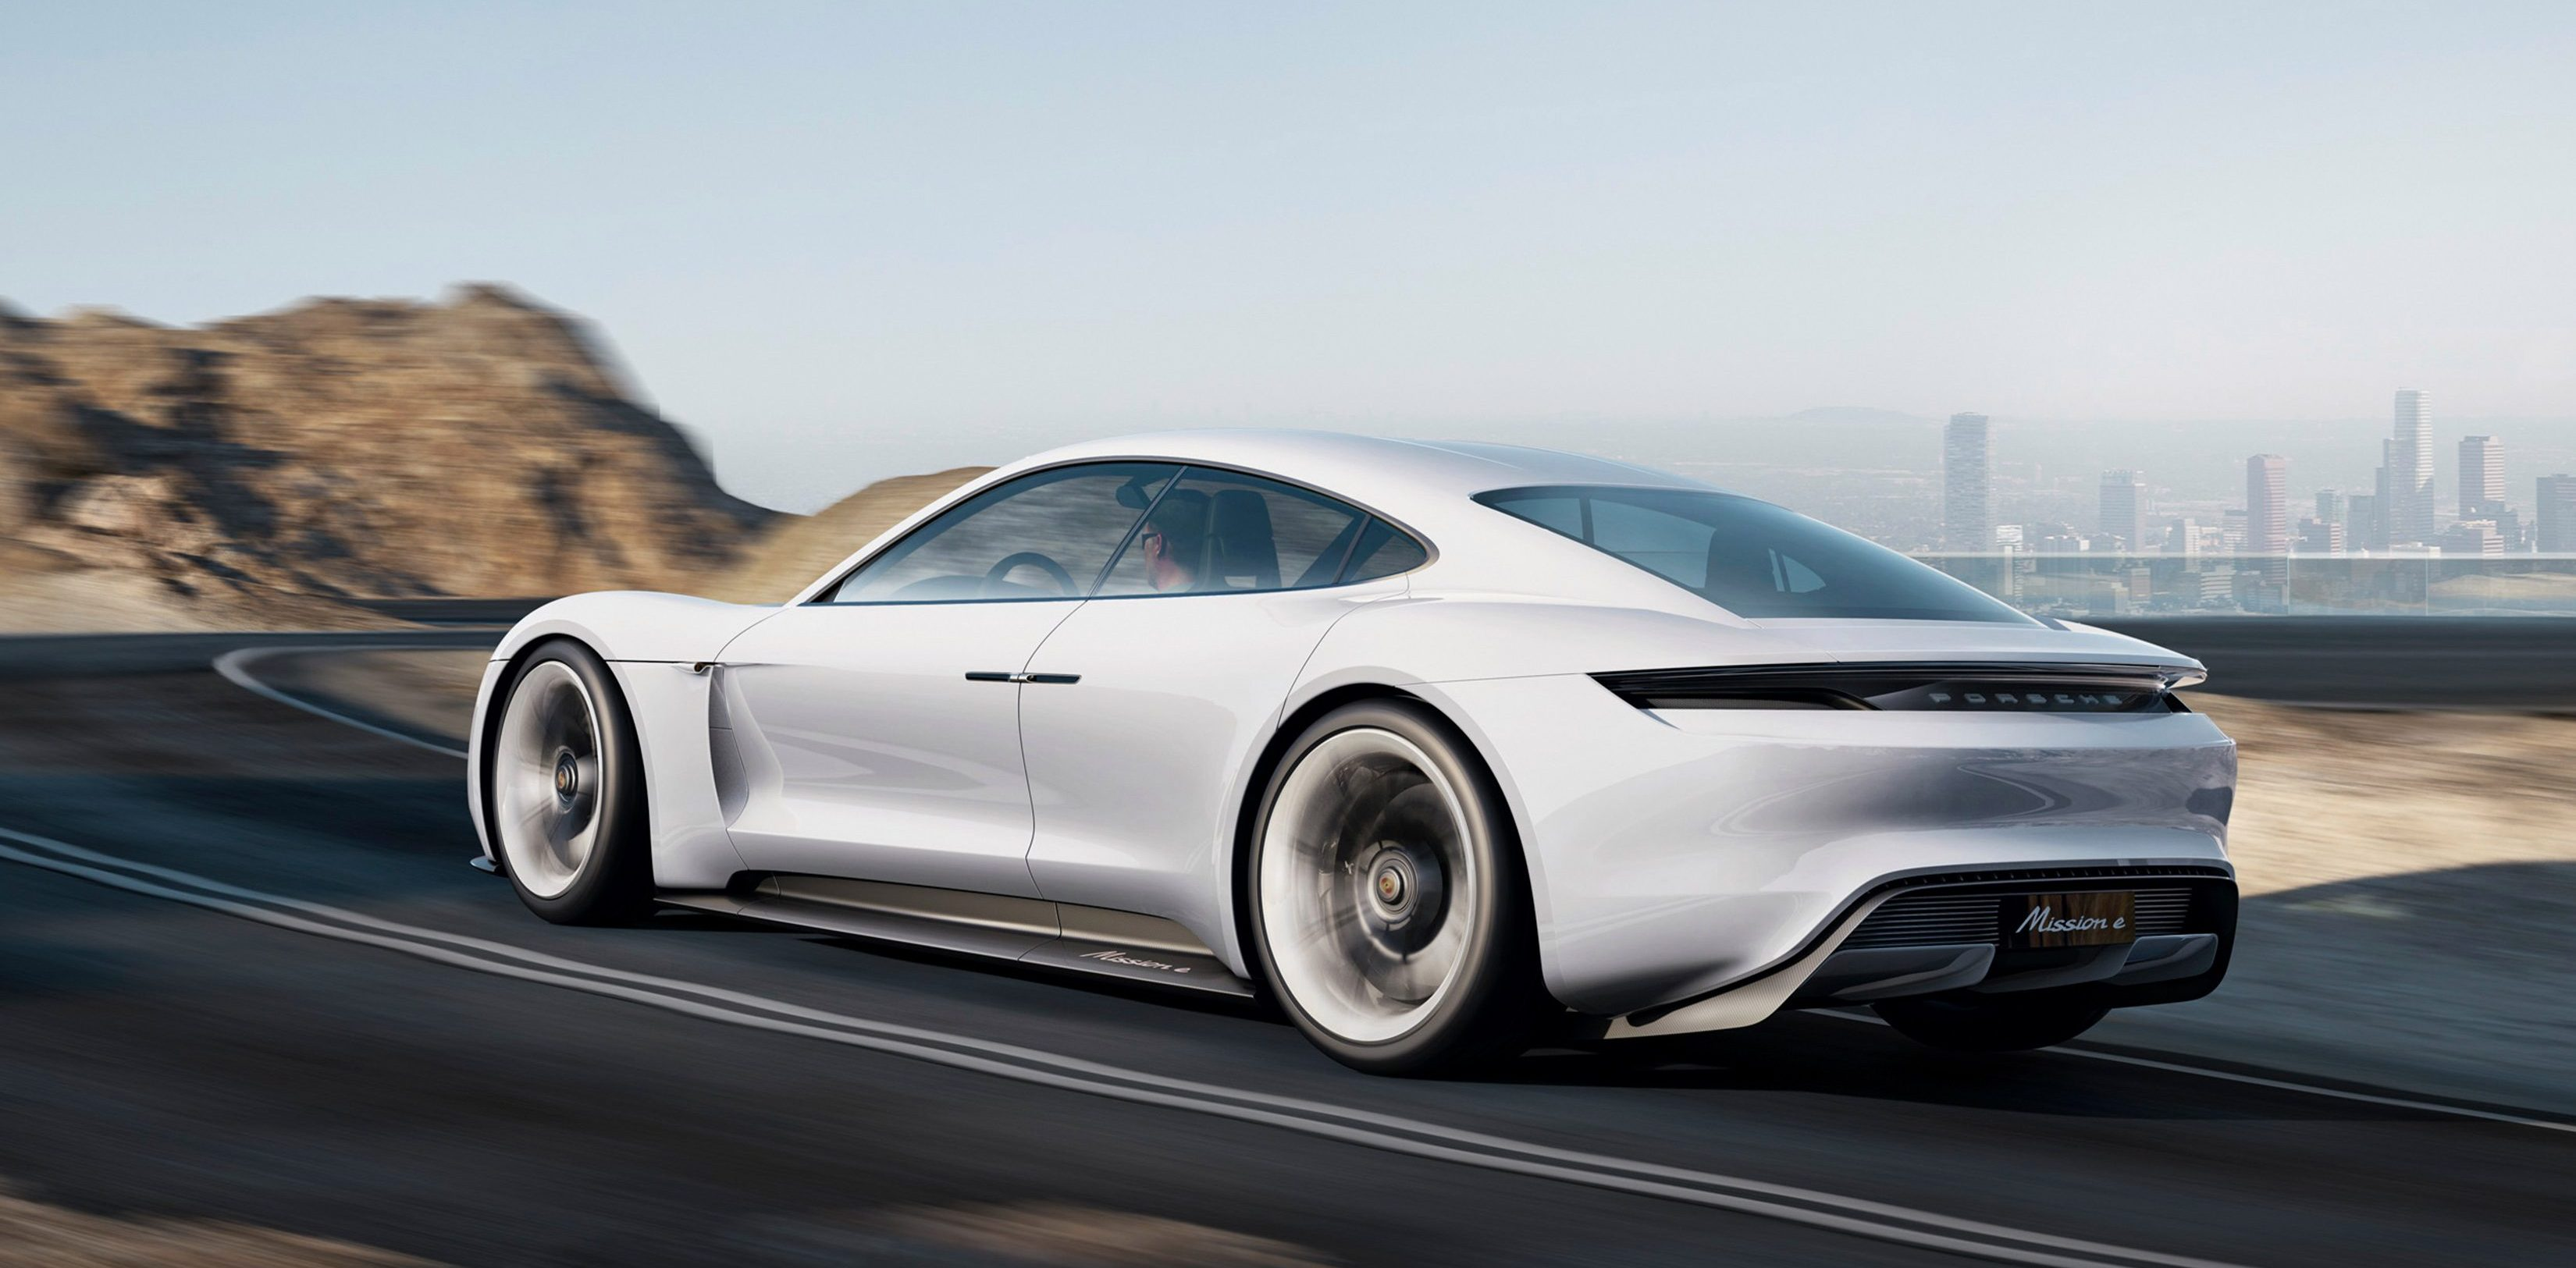 The all-electric Porsche Taycan 'drives like a Porsche, looks like a Porsche, and feels like a Porsche', says Head of EV programs